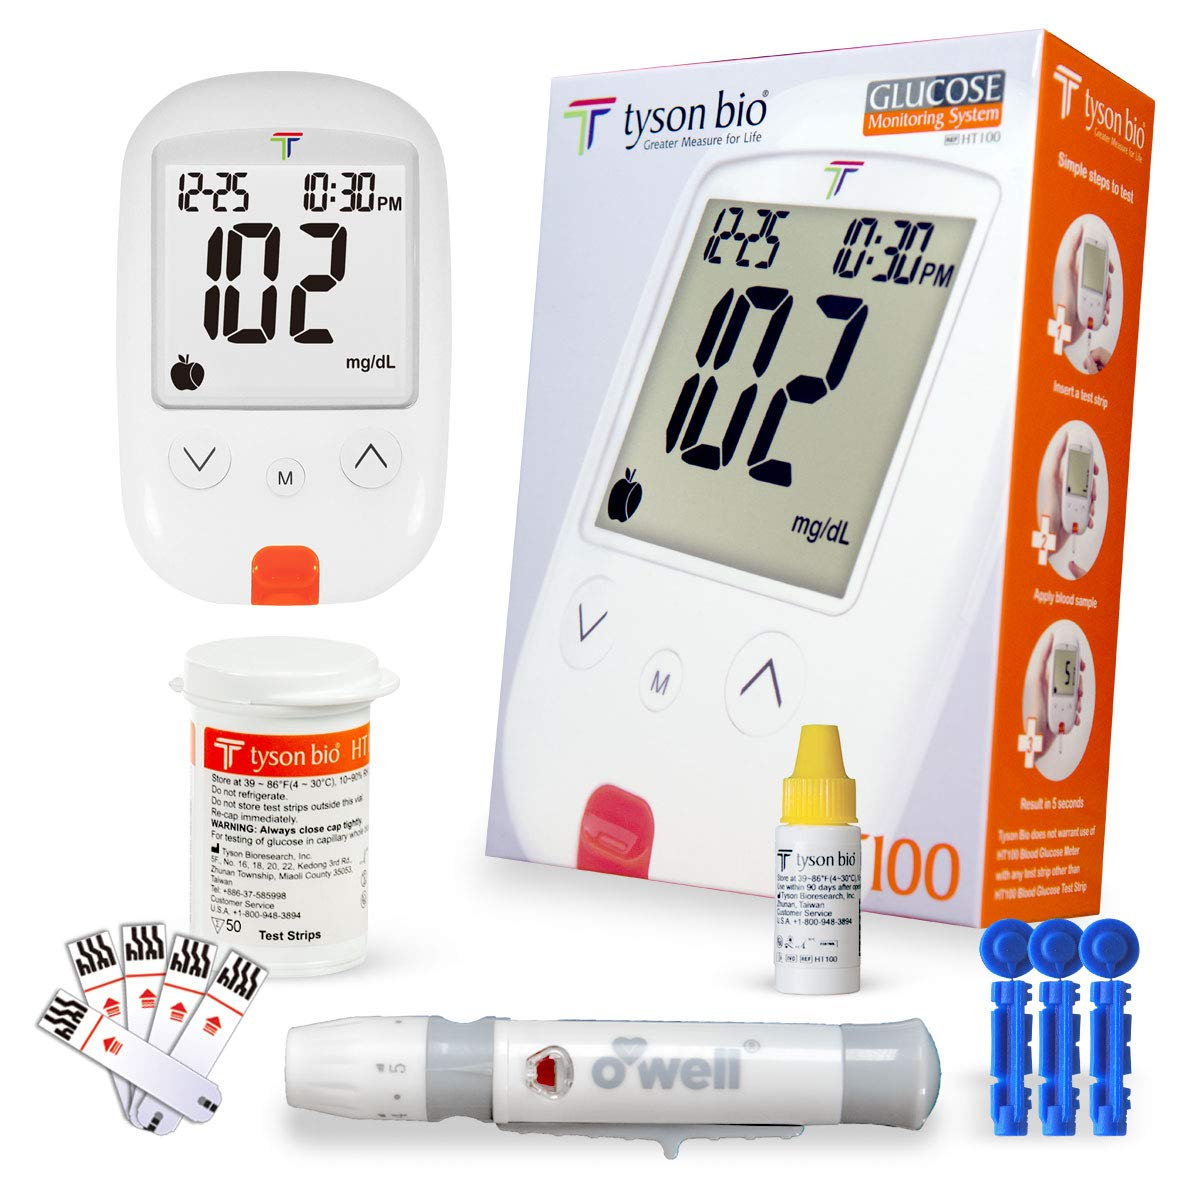 O'Well Tyson Blood Glucose Testing Kit + 50 Refills | Includes: Meter, 50 Test Strips, 50 Lancets, Lancing Devices, Control Solution, Manuals, Logbook & Carry Case